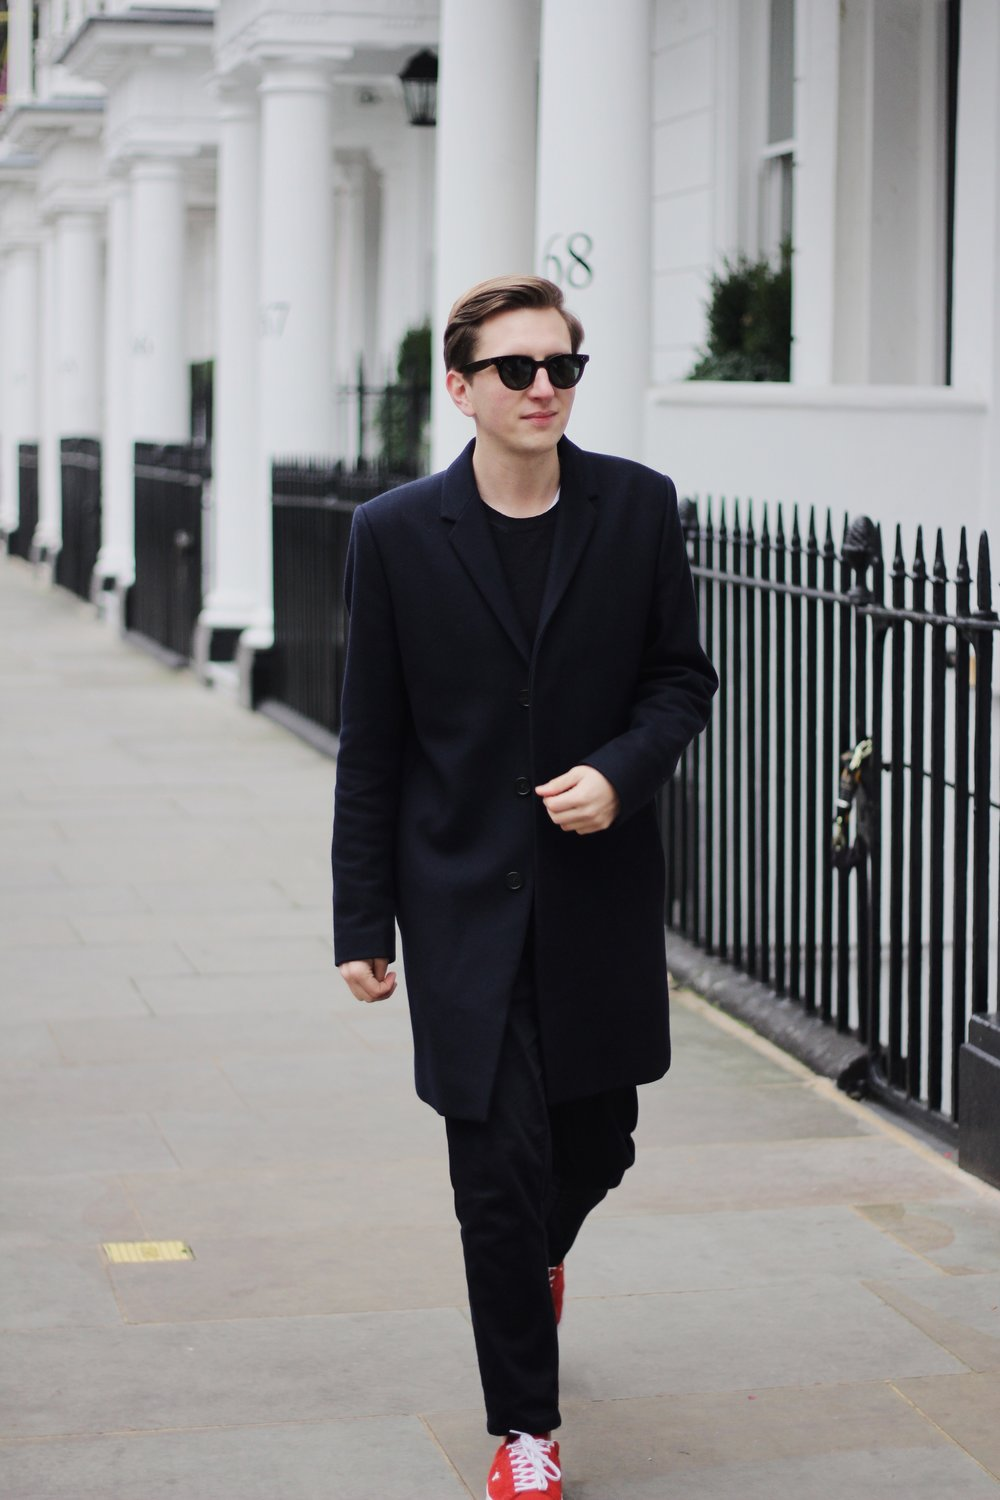 southkensington_london_ootd_style_menswear_cos